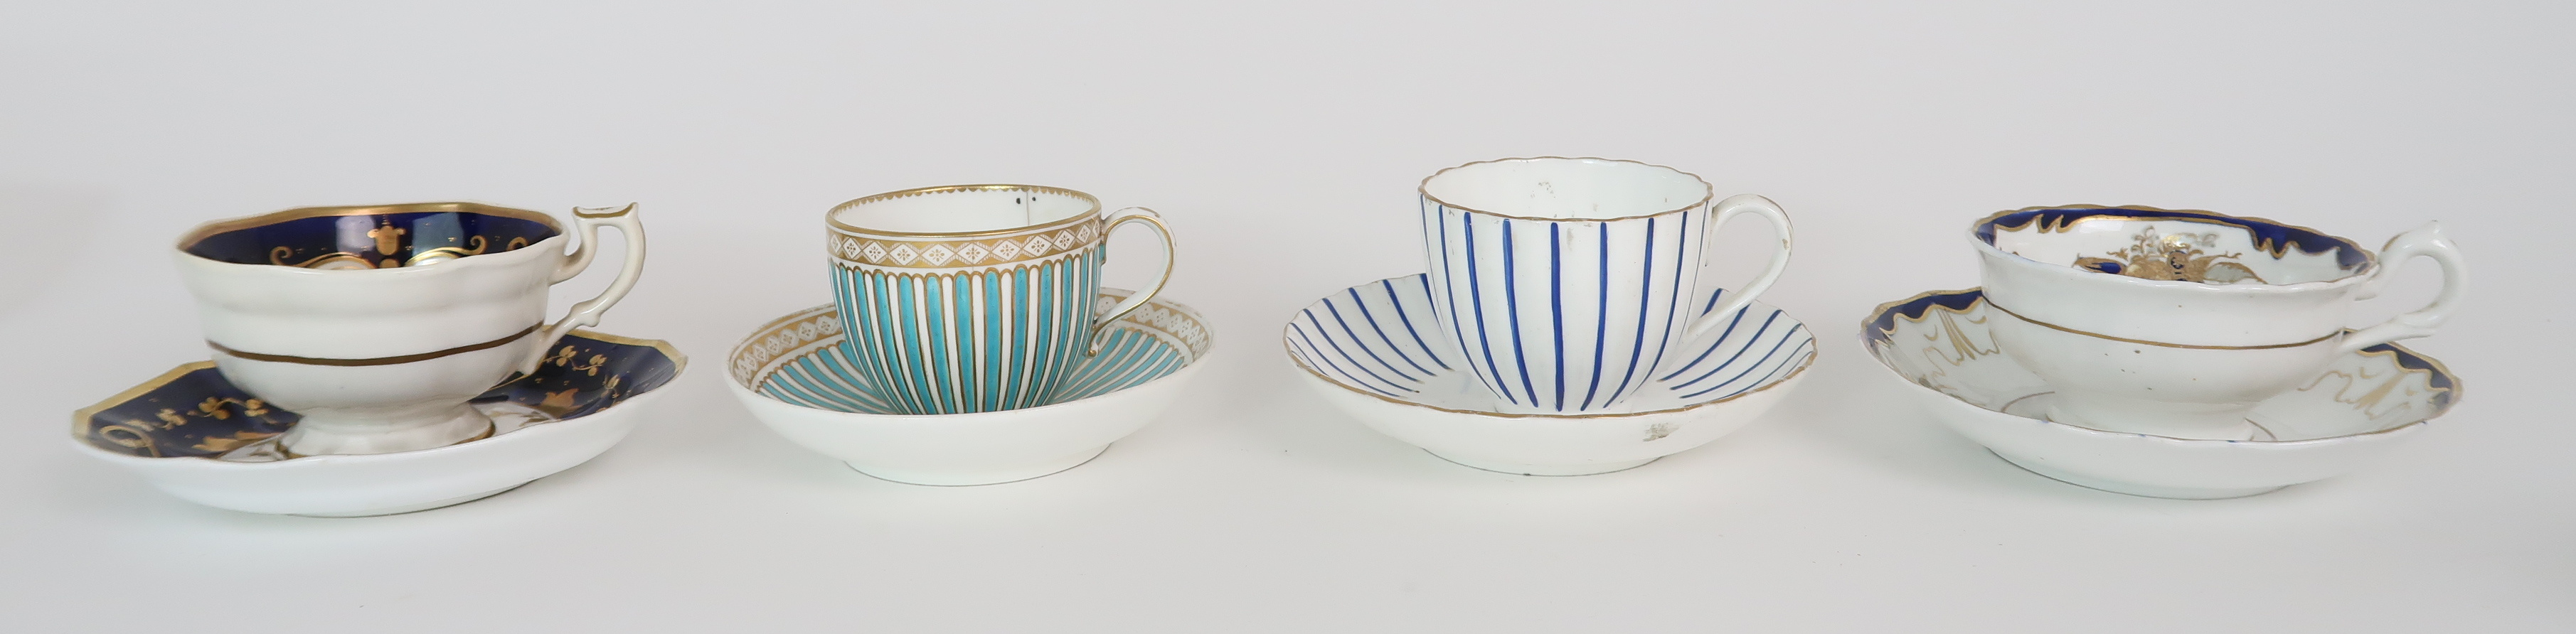 A COLLECTION OF 19TH CENTURY ENGLISH BLUE AND GILT DECORATED TEA AND COFFEE WARES including a - Image 2 of 23